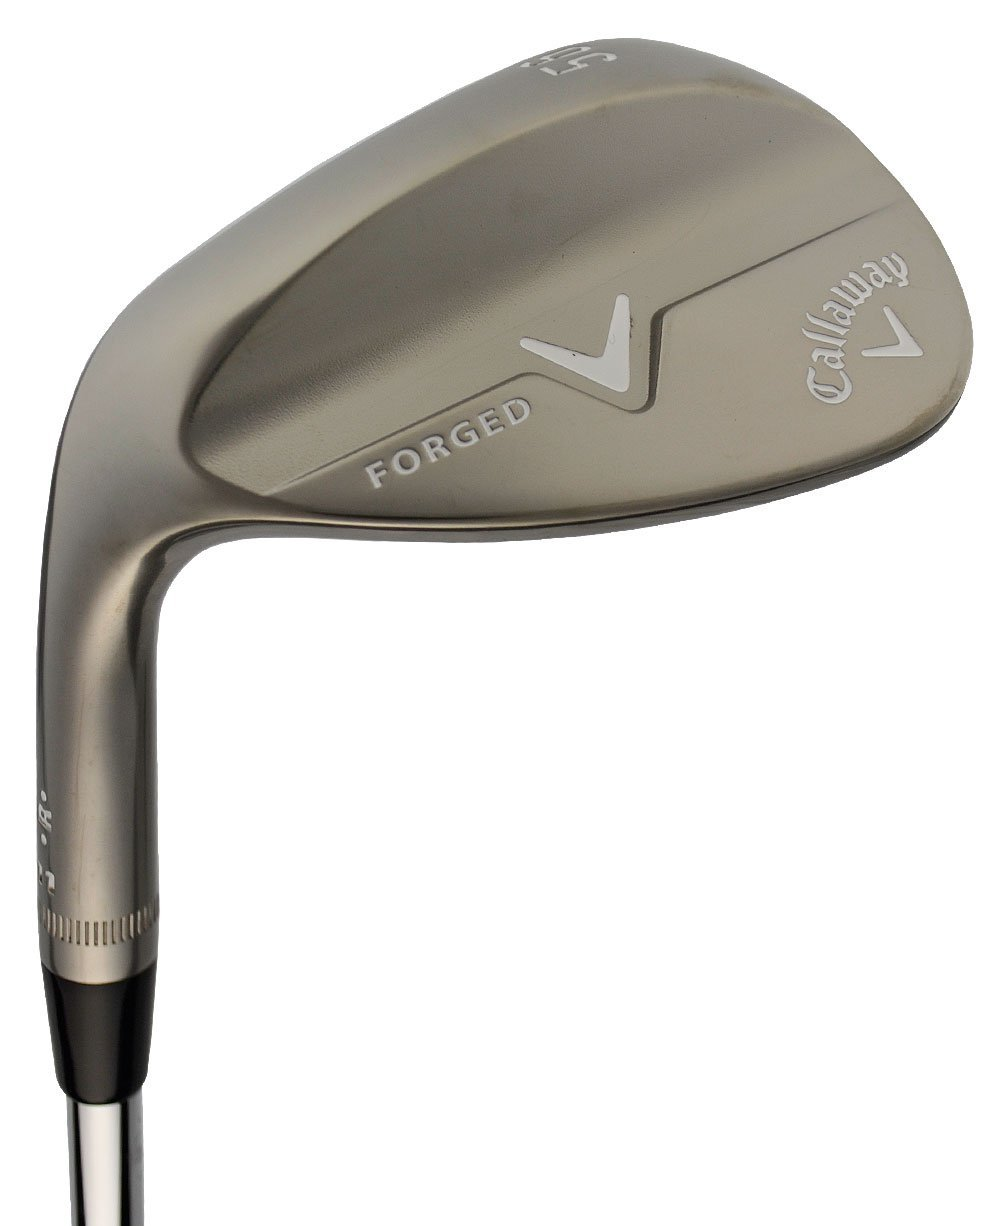 Picking the Best Lob Wedge